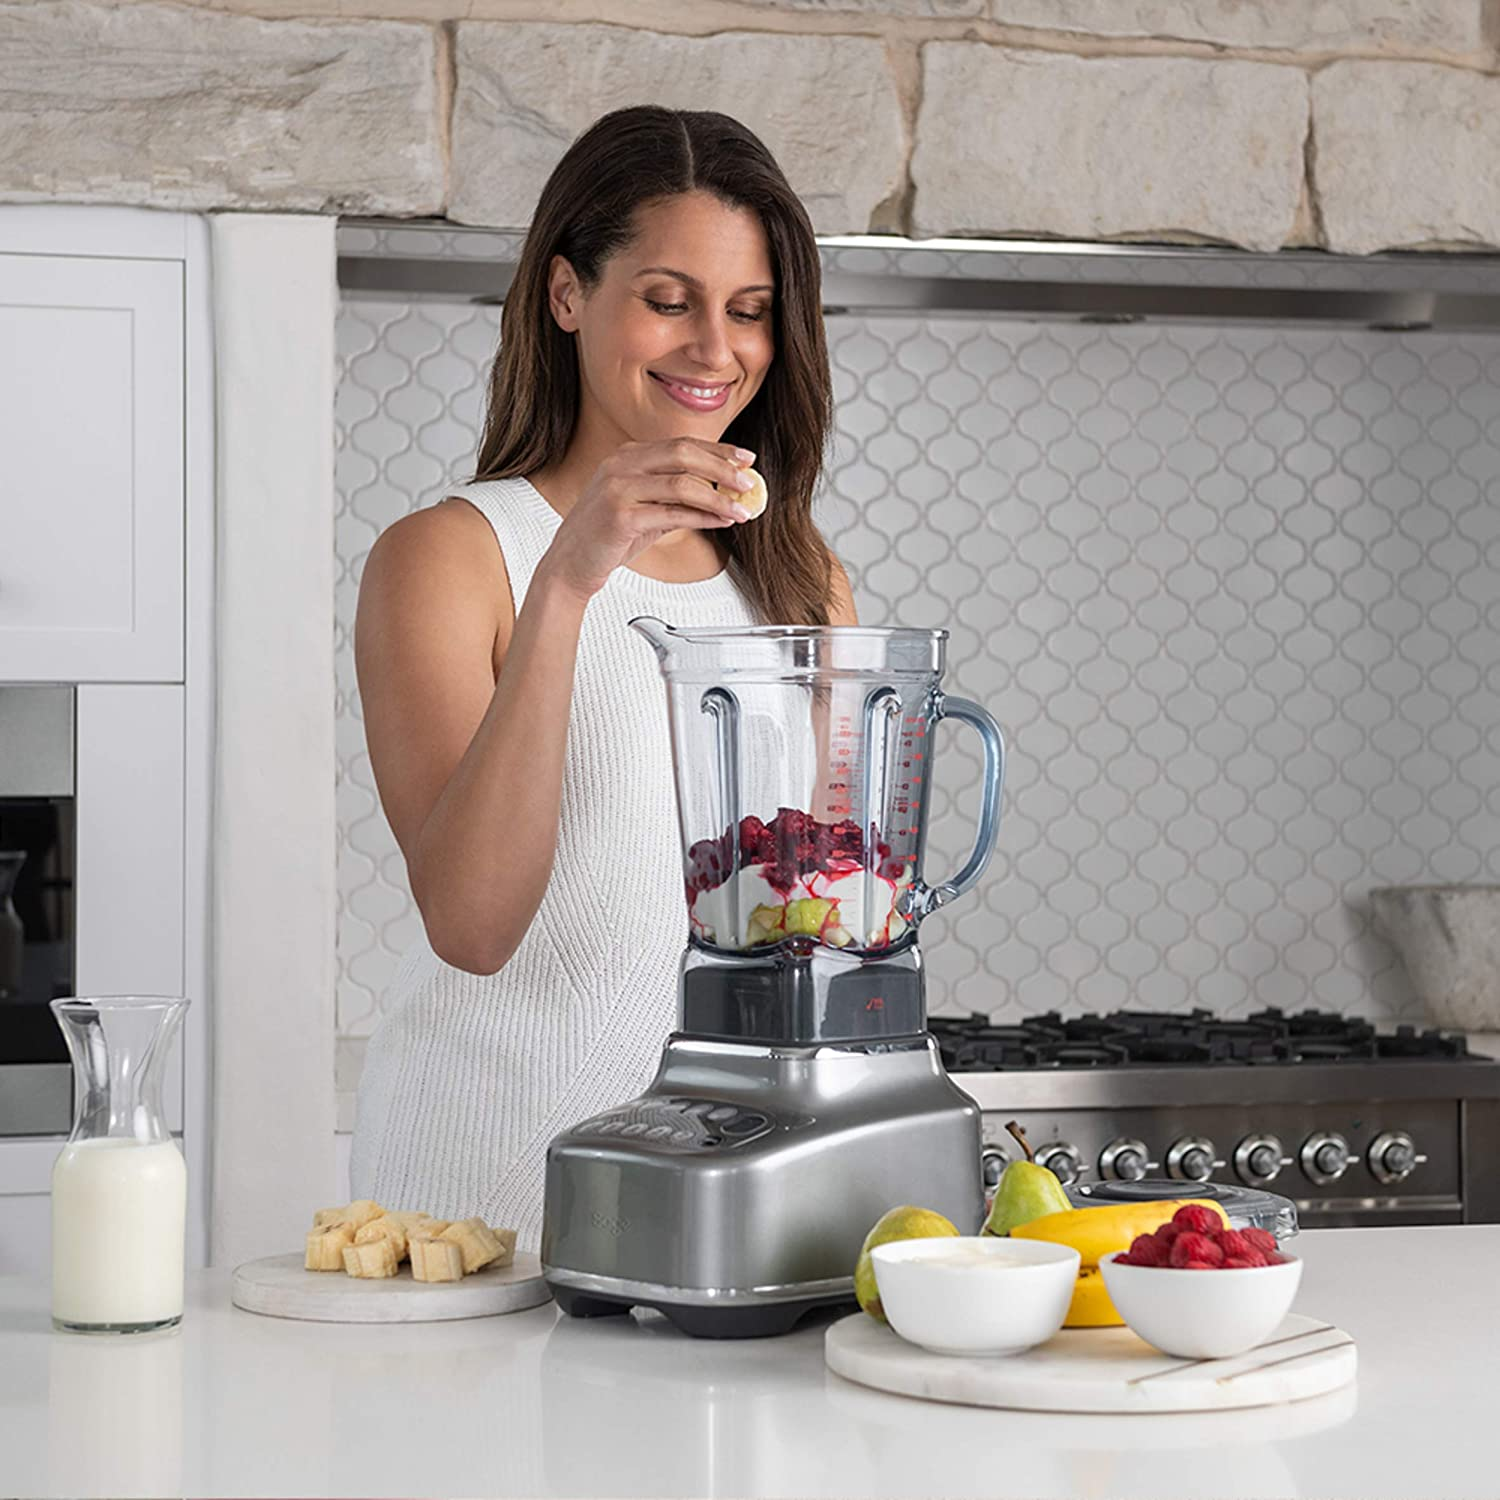 Abs 2400 W Smoked Hickory Sage Sbl820shy The Q Q Super Blender 2 Liters Small Kitchen Appliances Kitchen Home Appliances